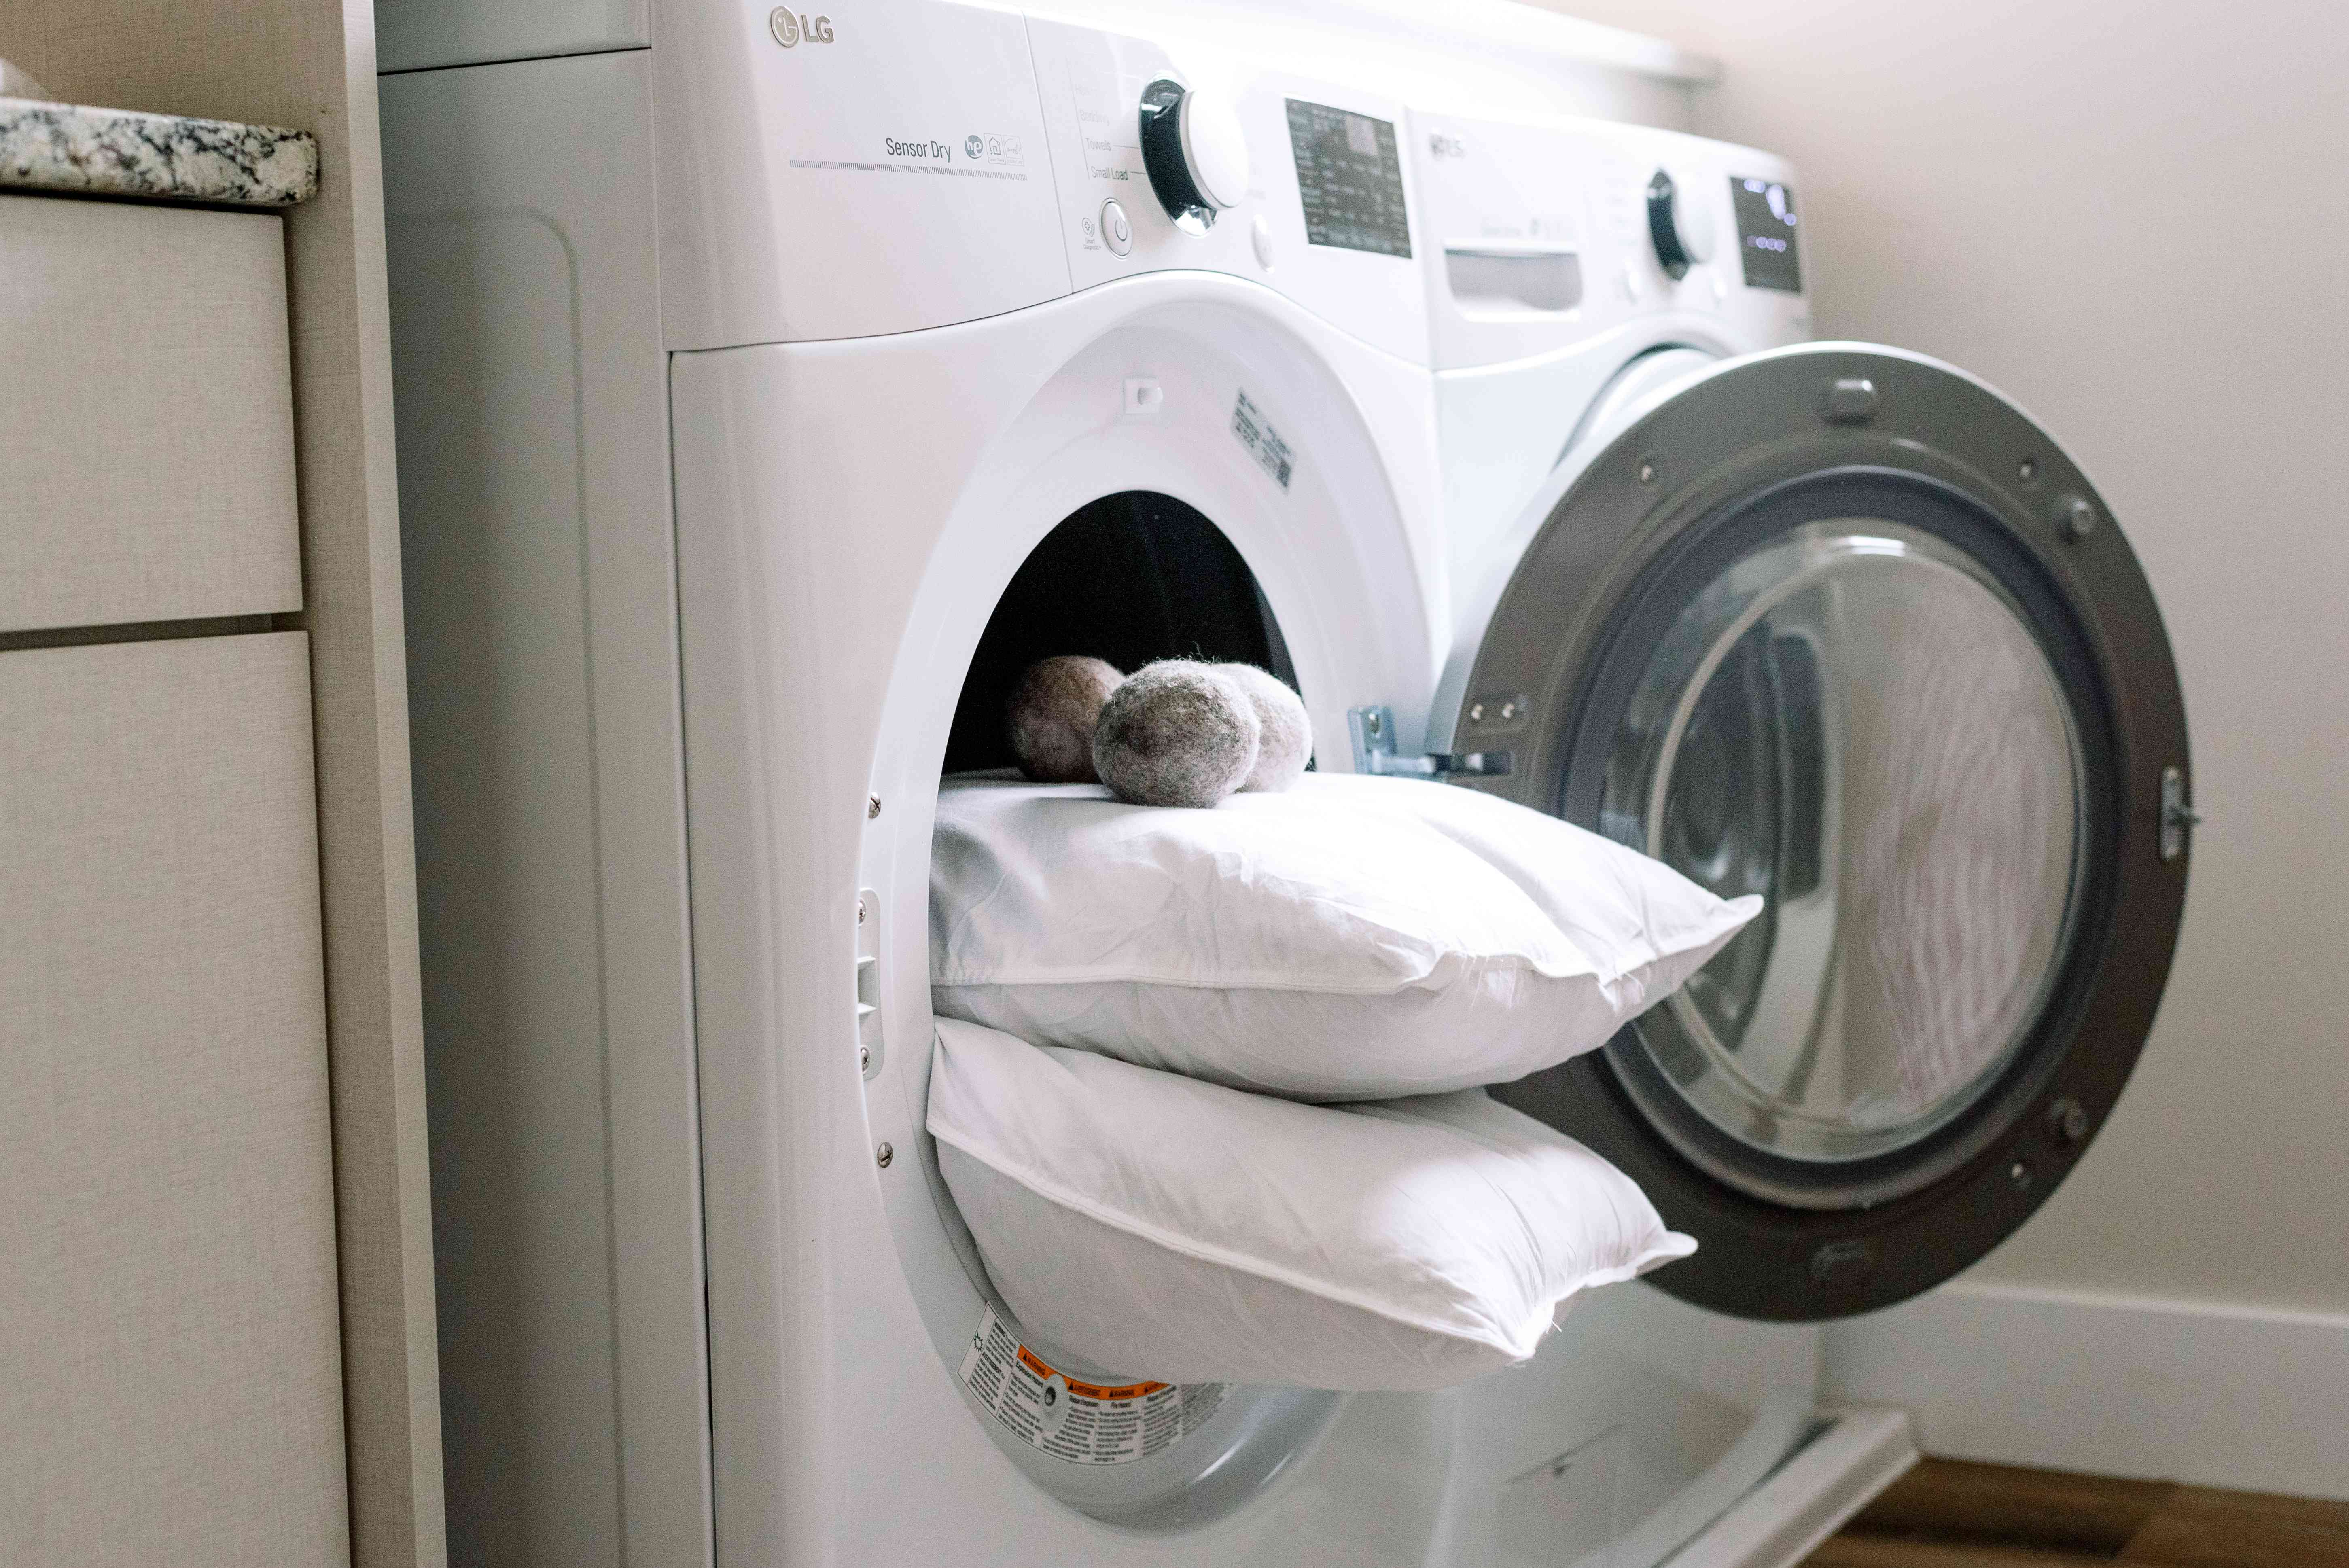 Two pillows and dryer balls in a dryer